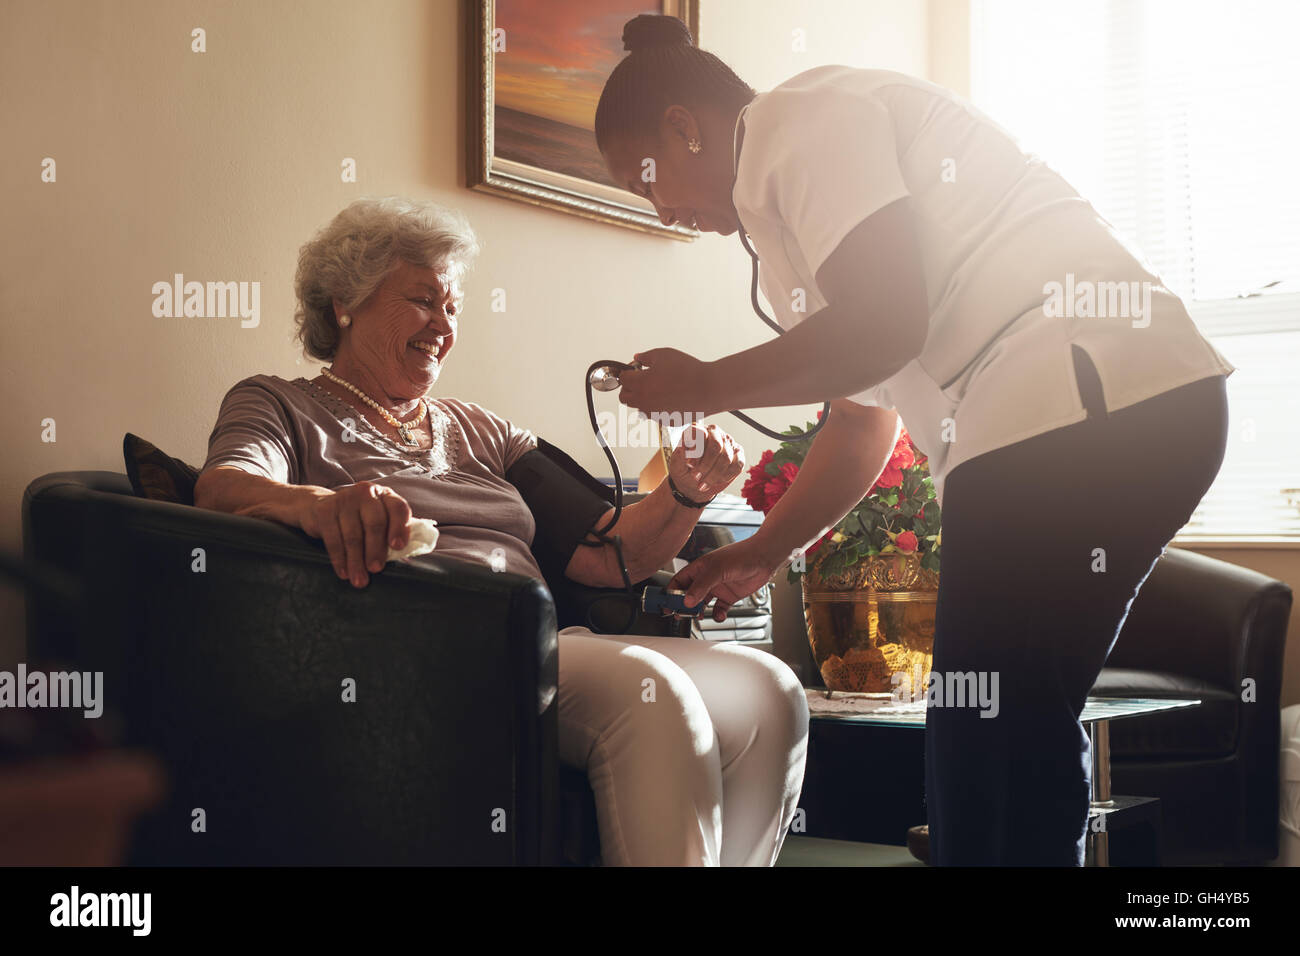 Nurse measuring blood pressure of senior woman patient in retirement home. Home caregiver doing routine checkup - Stock Image